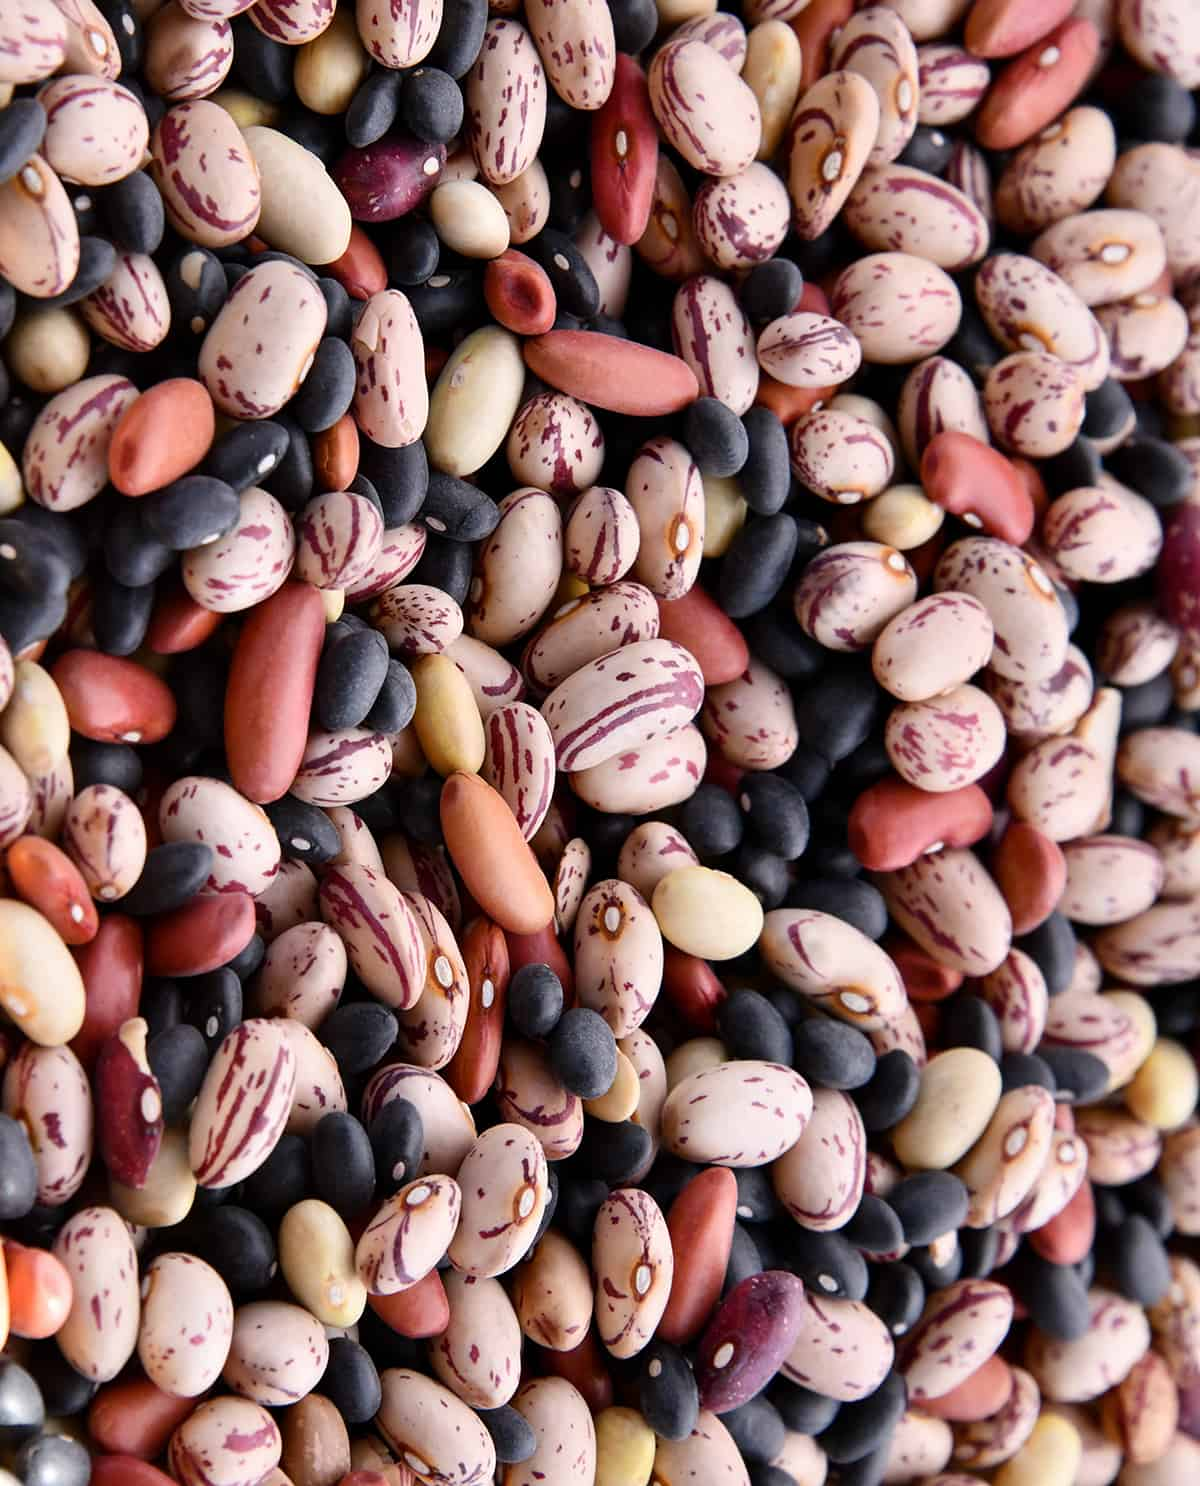 assortment of colored beans